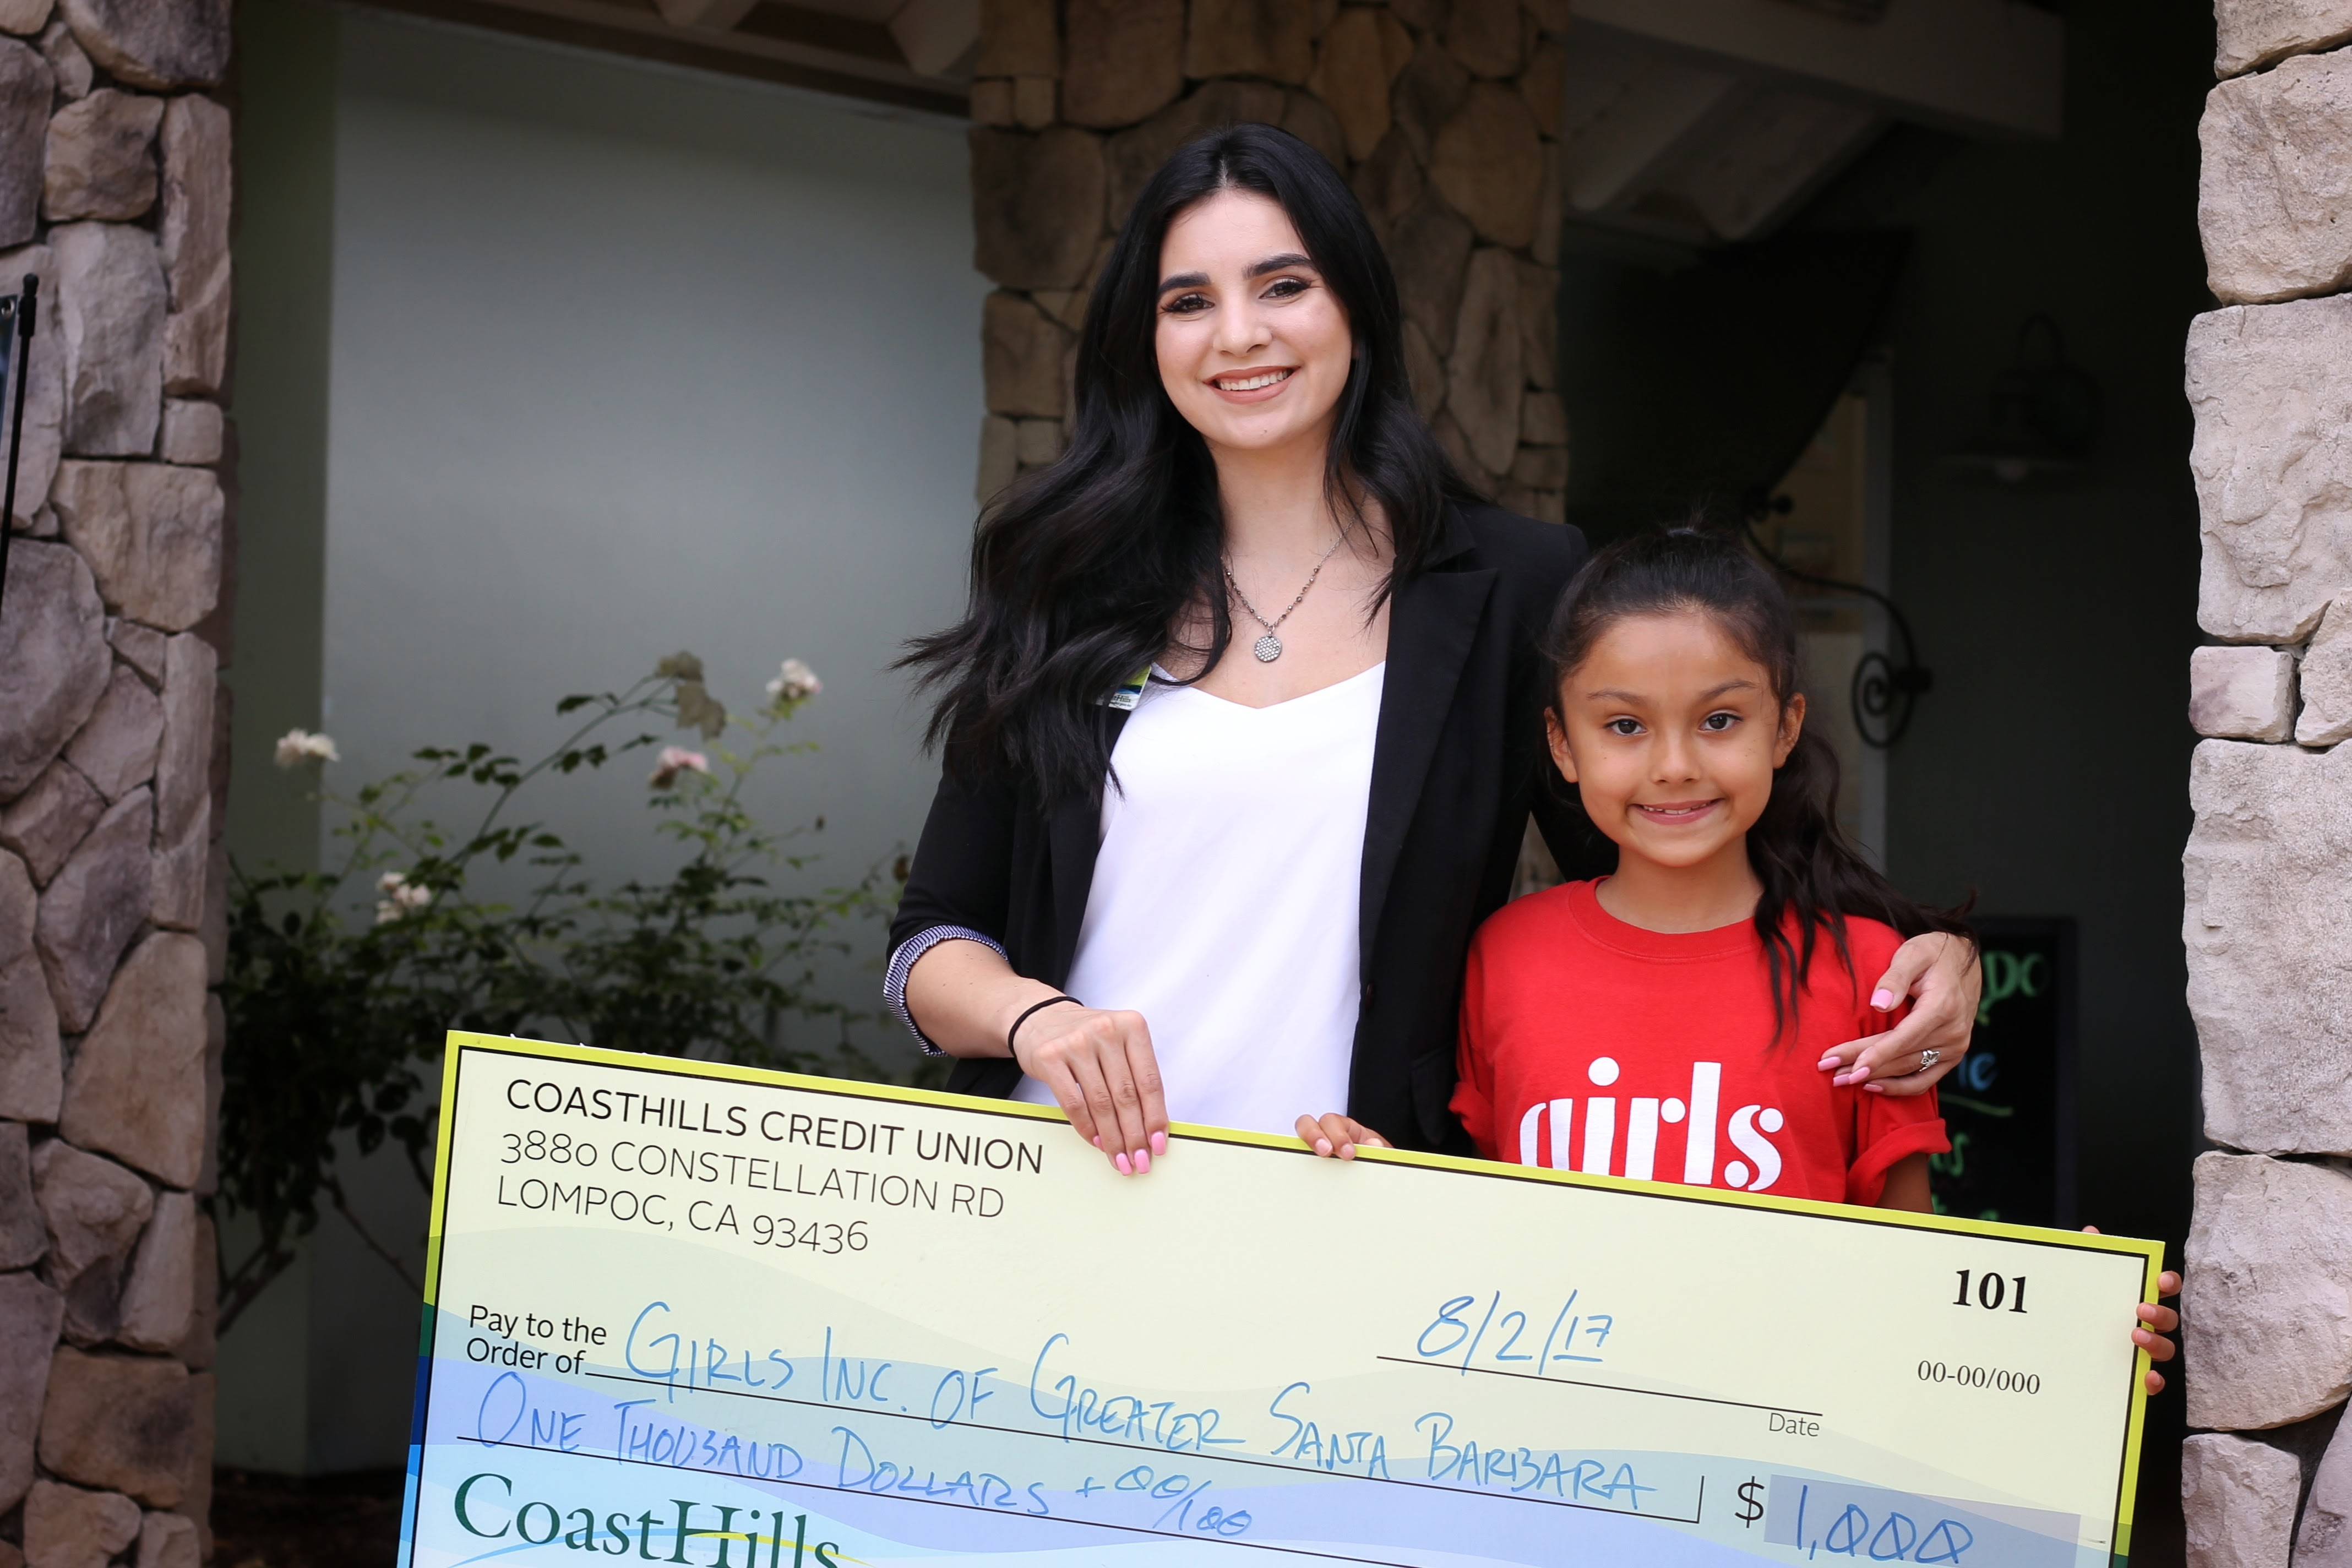 CoastHills Credit Union corporate employee Selenda Diaz and her sister Ava present Girls Inc. of Santa Barbara a check for $1,000 from the Credit Union's employee giving program.